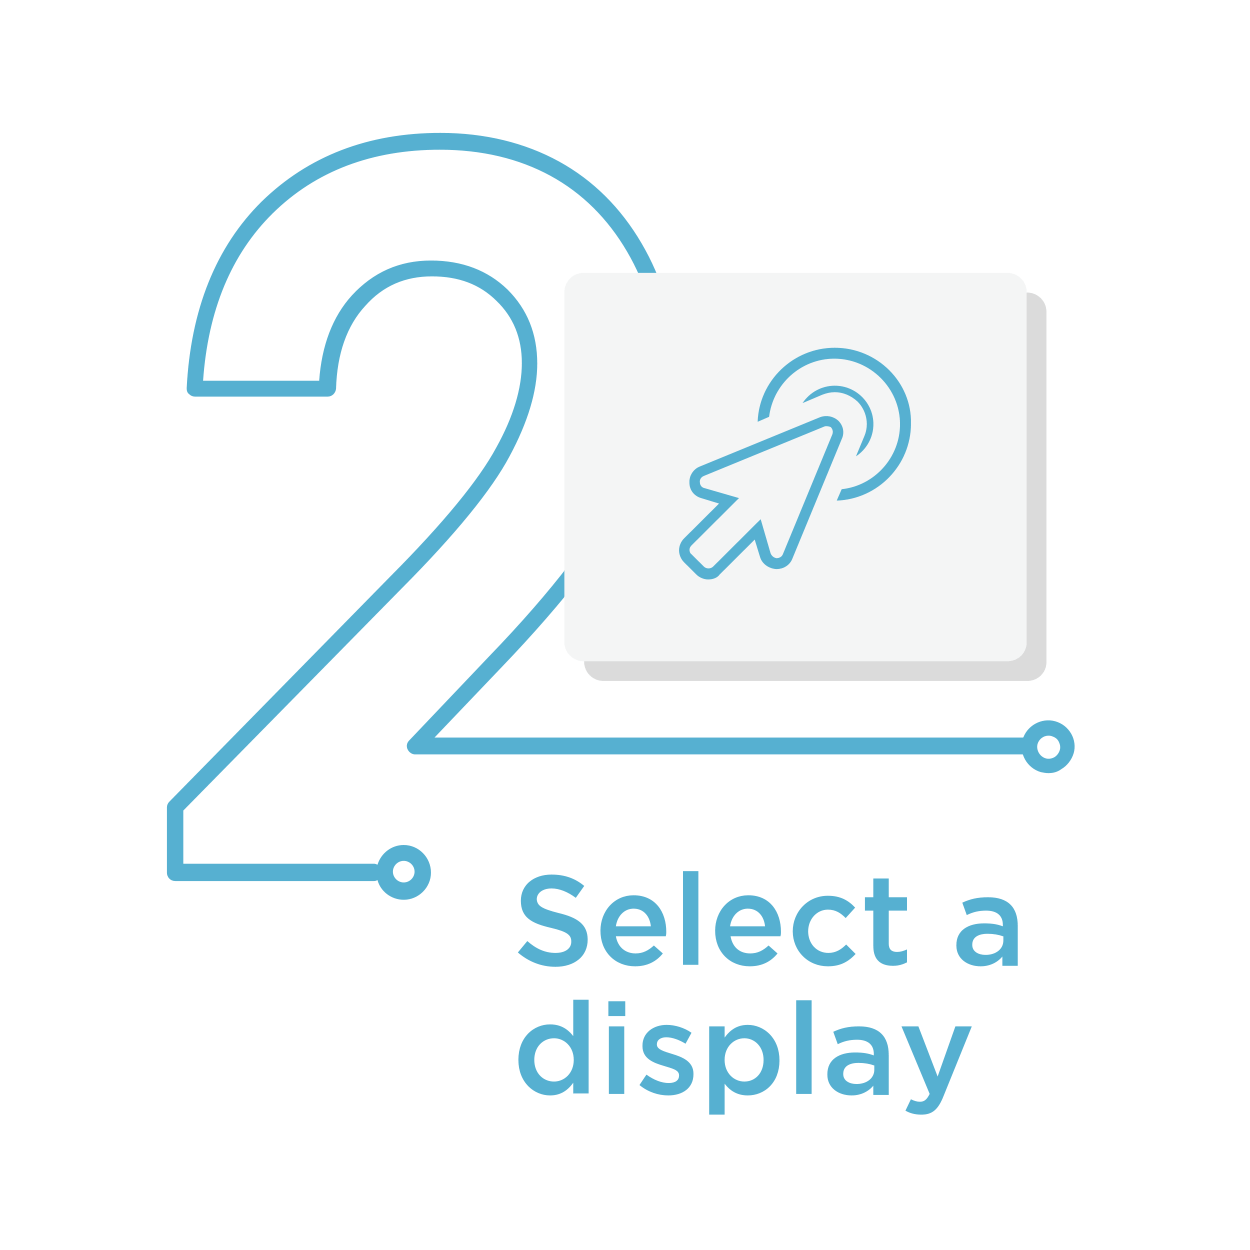 Step 2 - Select a display